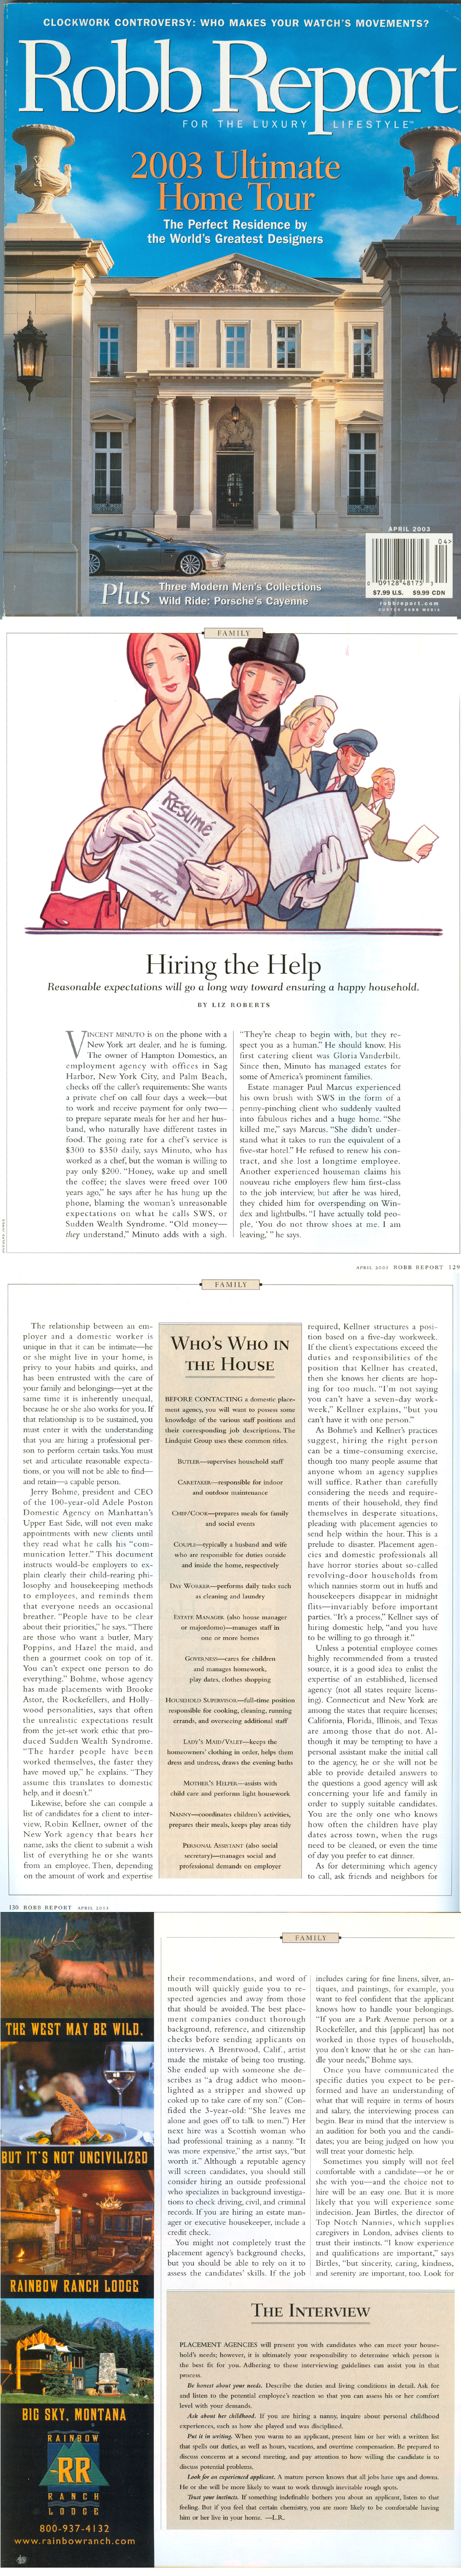 Robb Report 2003 Article